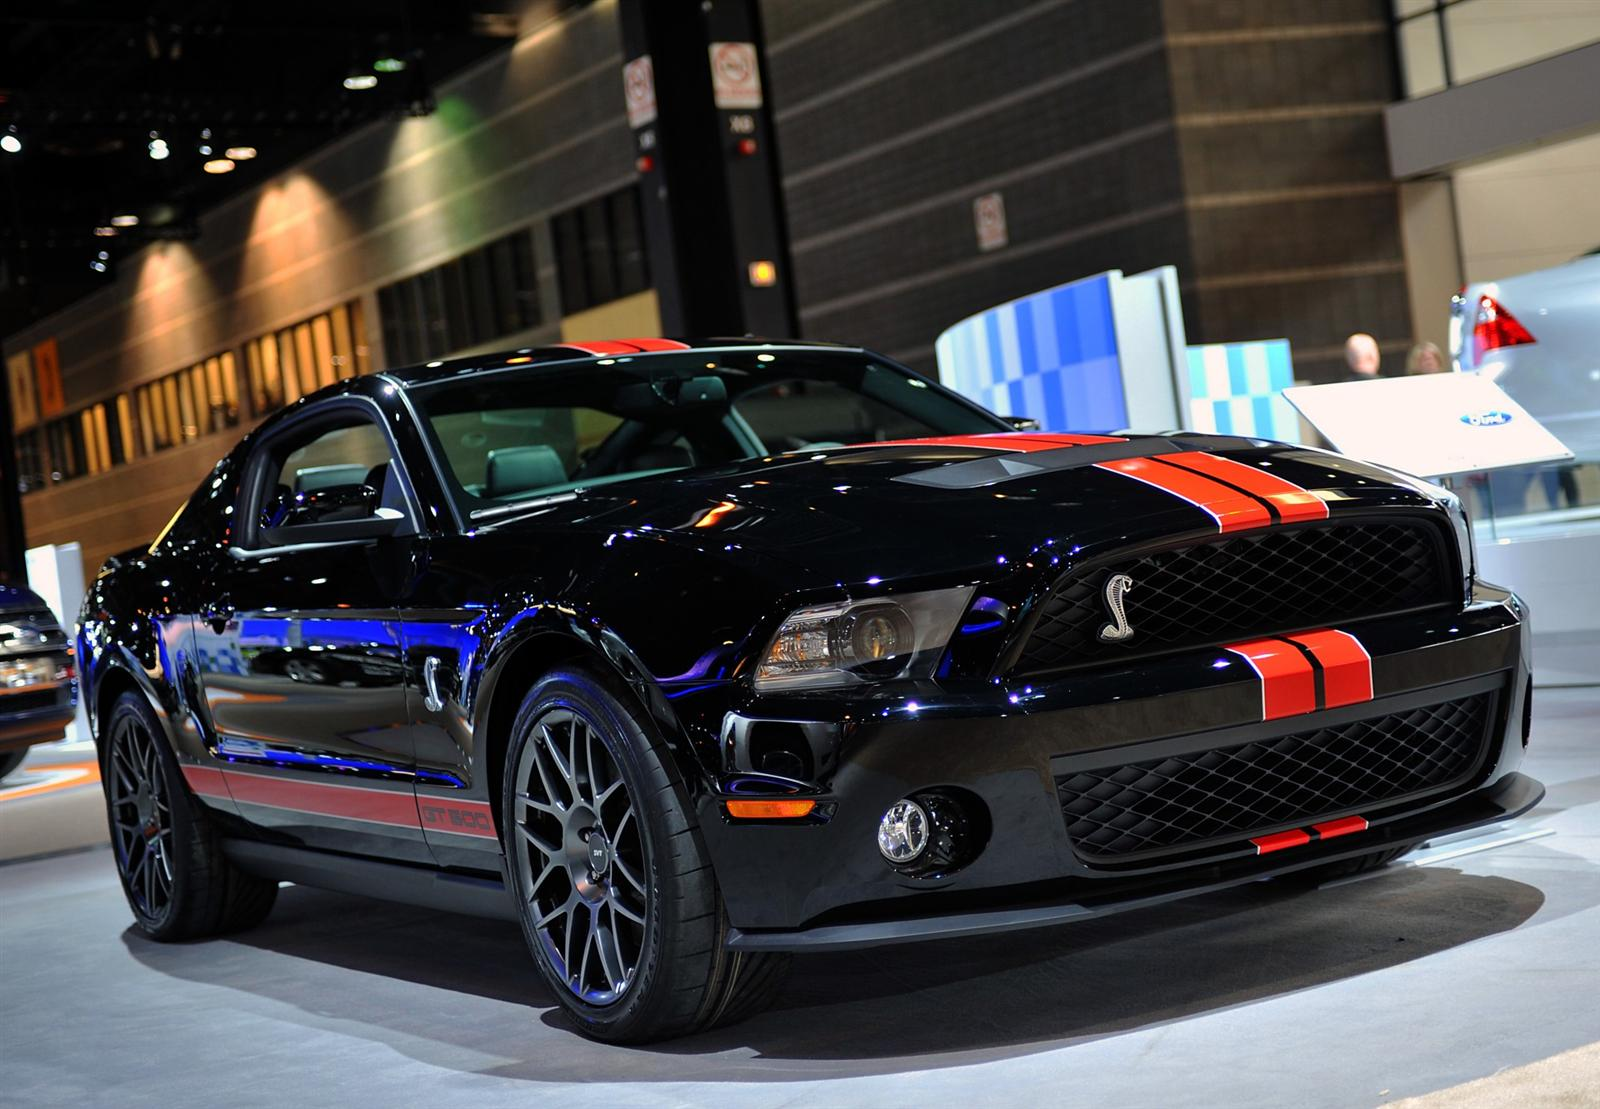 2011 shelby mustang gt500 images photo 2011 shelby. Black Bedroom Furniture Sets. Home Design Ideas